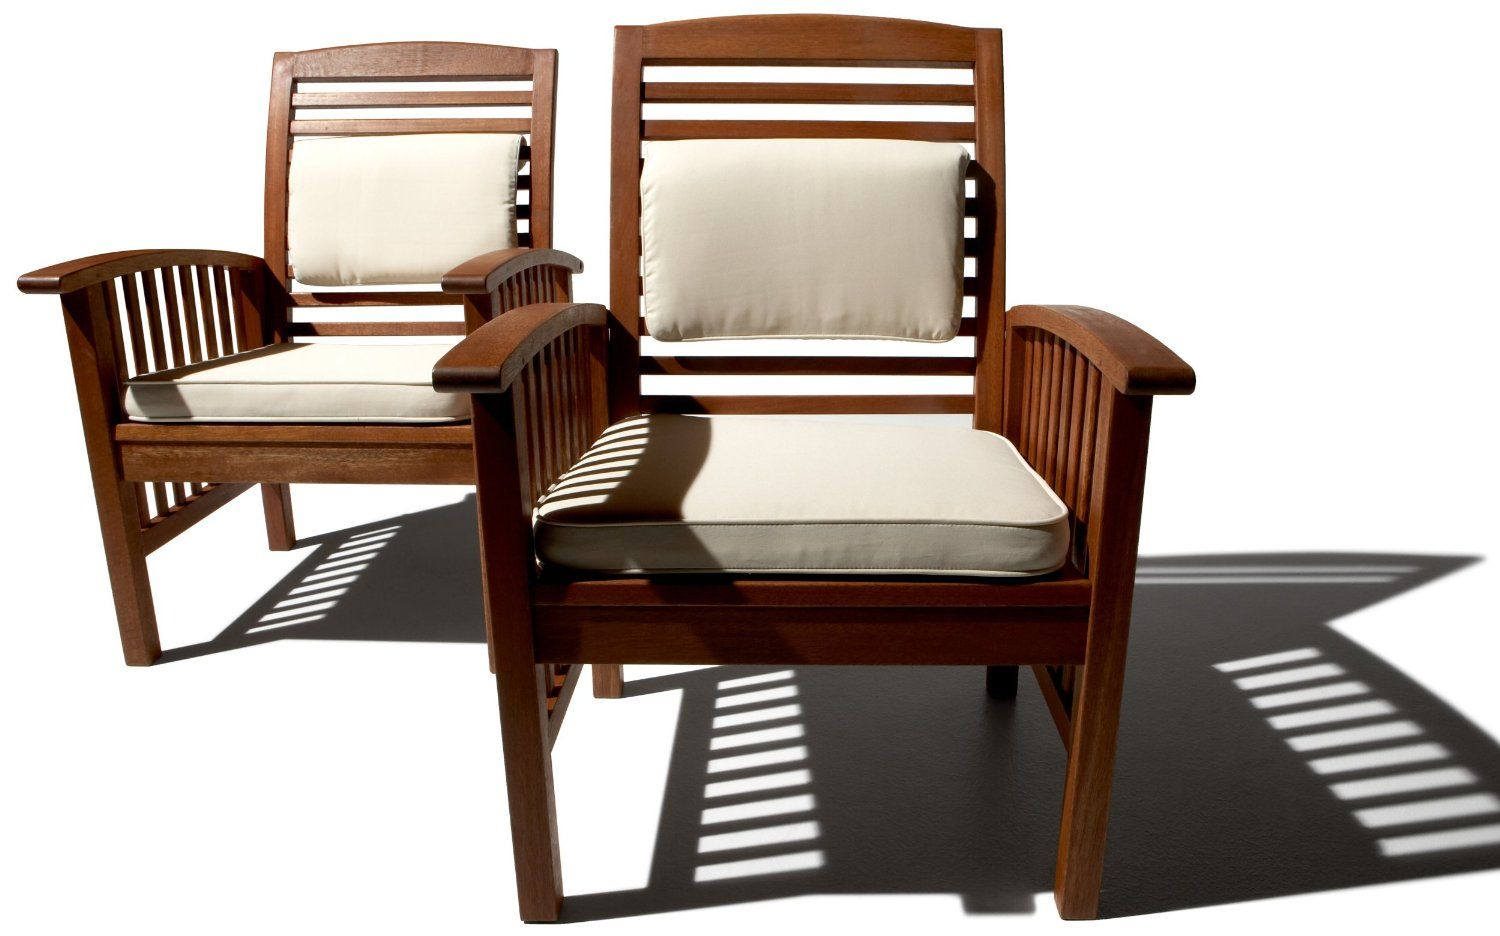 Amazon.com: Strathwood Gibranta All-Weather Hardwood Arm Chair, Set ...